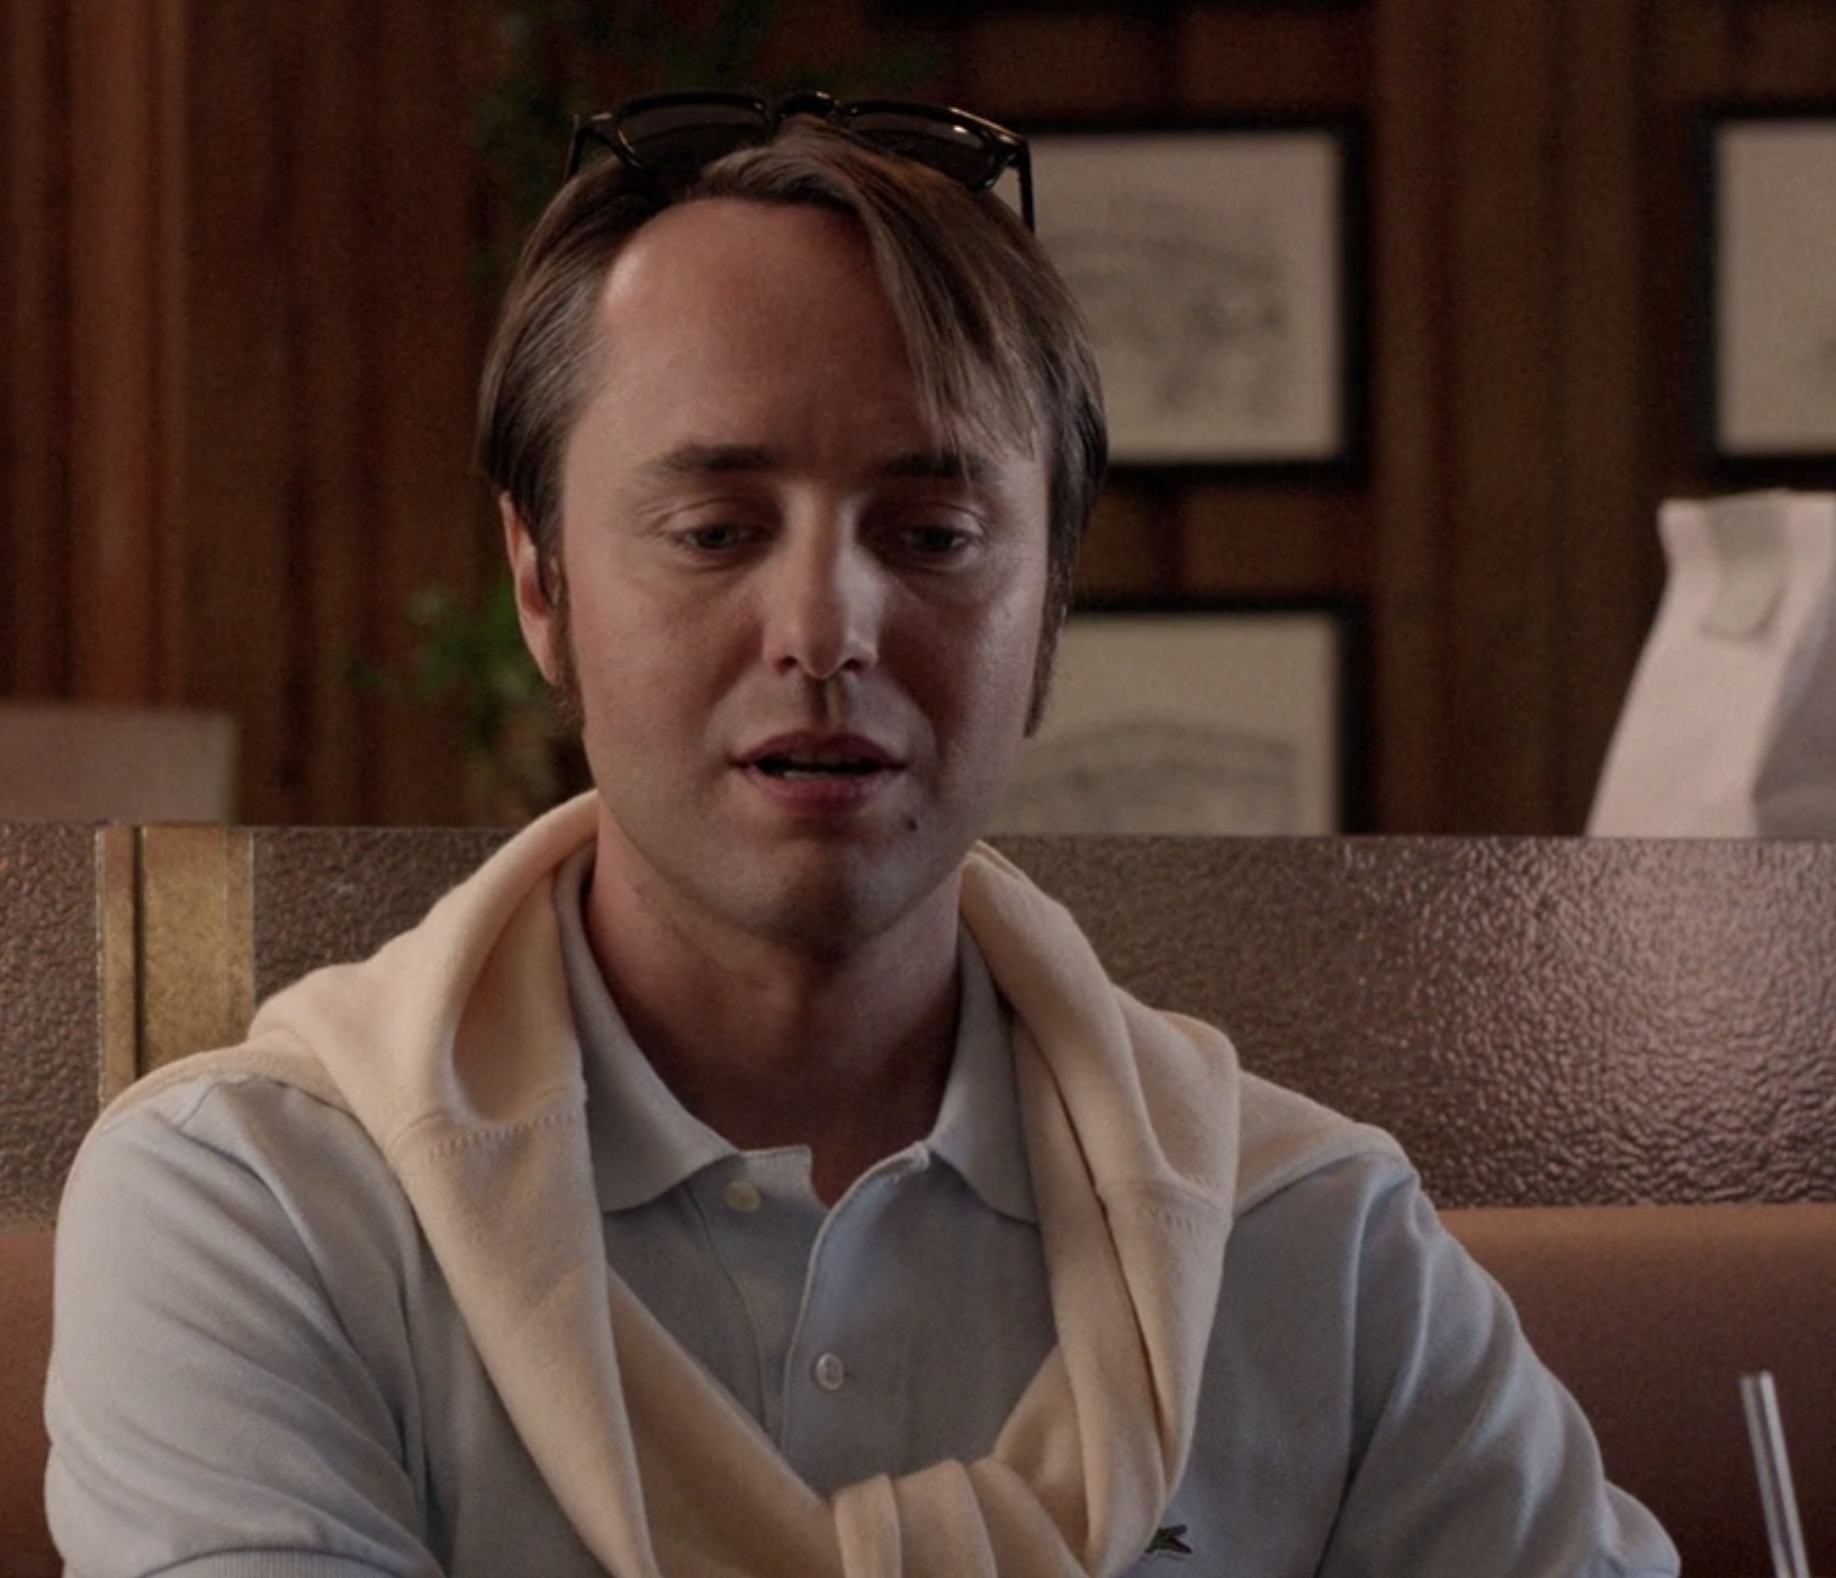 Vincent Kartheiser with his hairline pushed way back